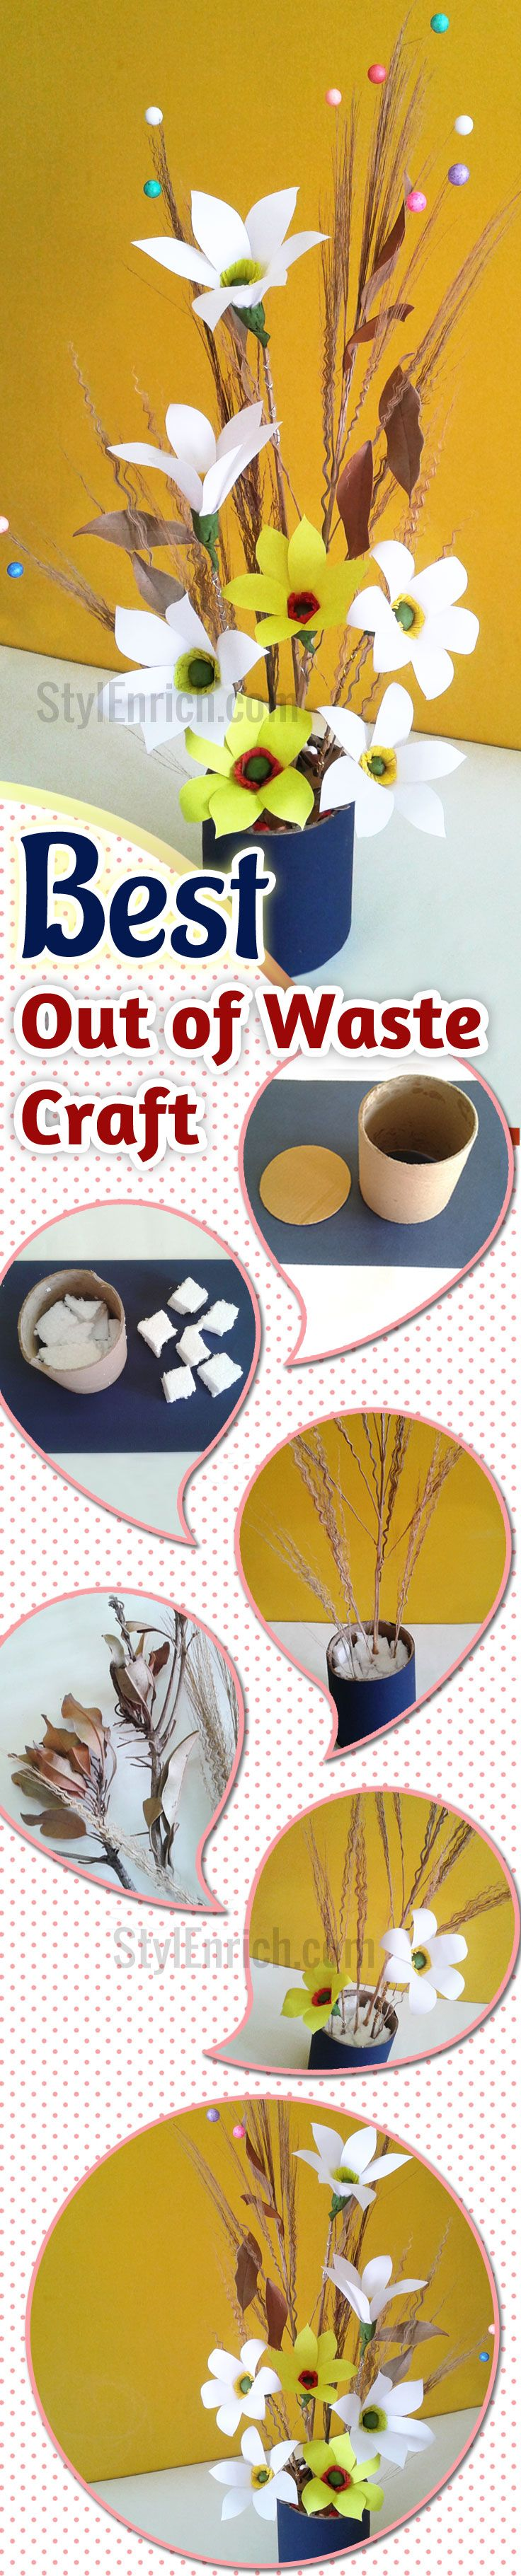 49 best images about best out of waste on pinterest for Best out of waste videos